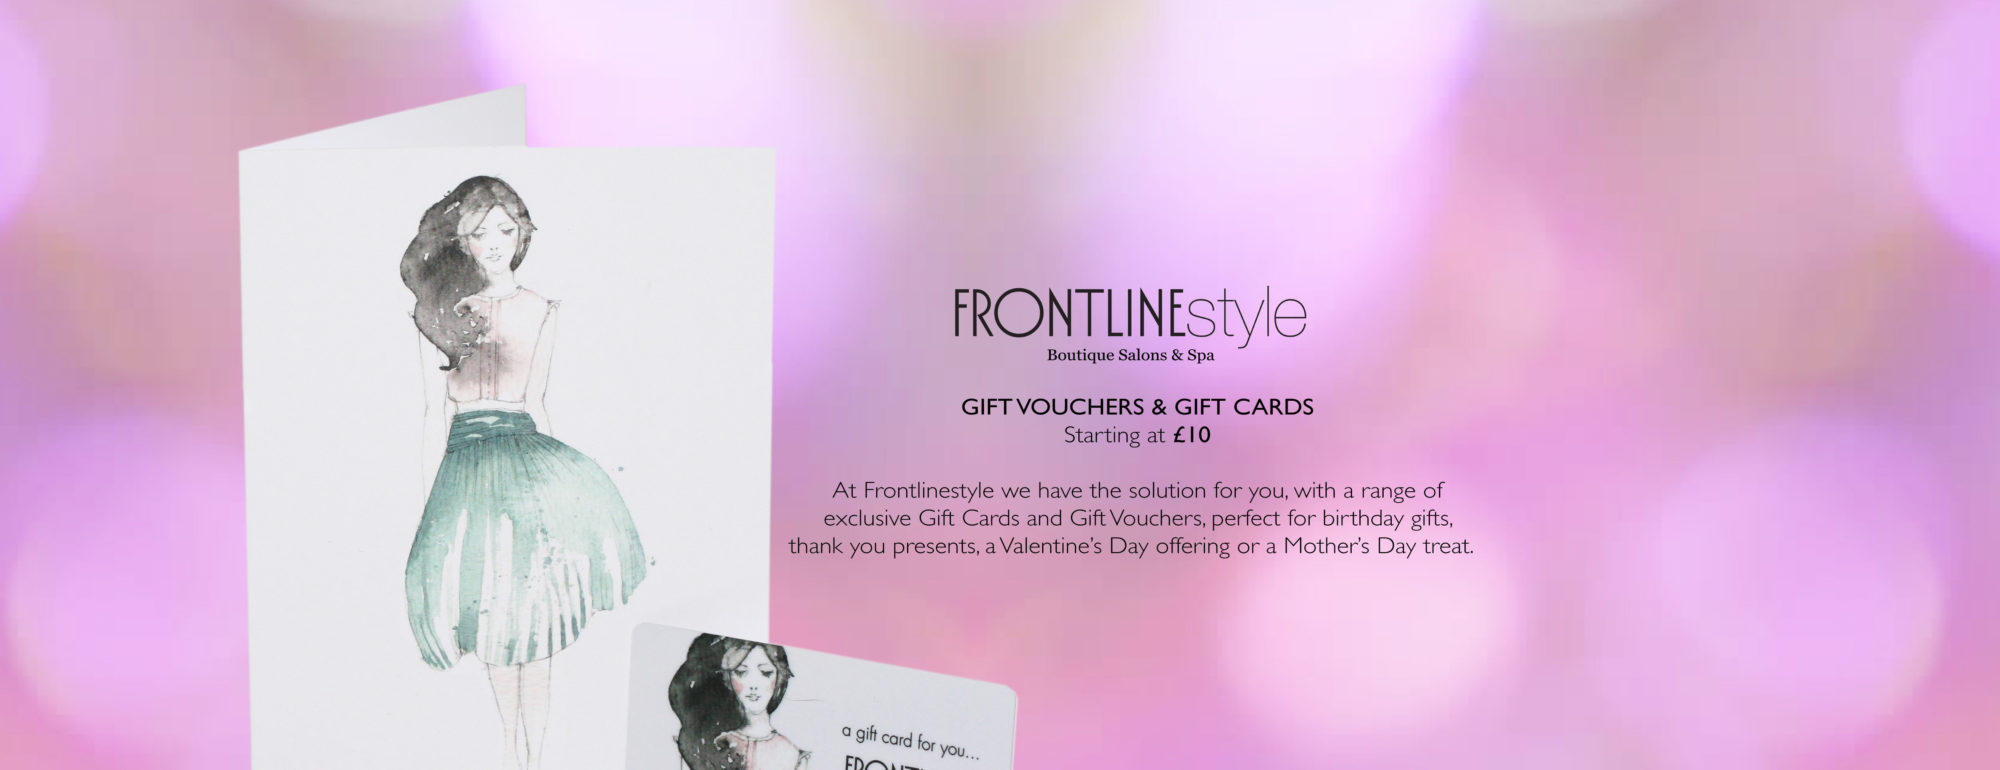 Gift Vouchers and Cards Available at Frontlinestyle